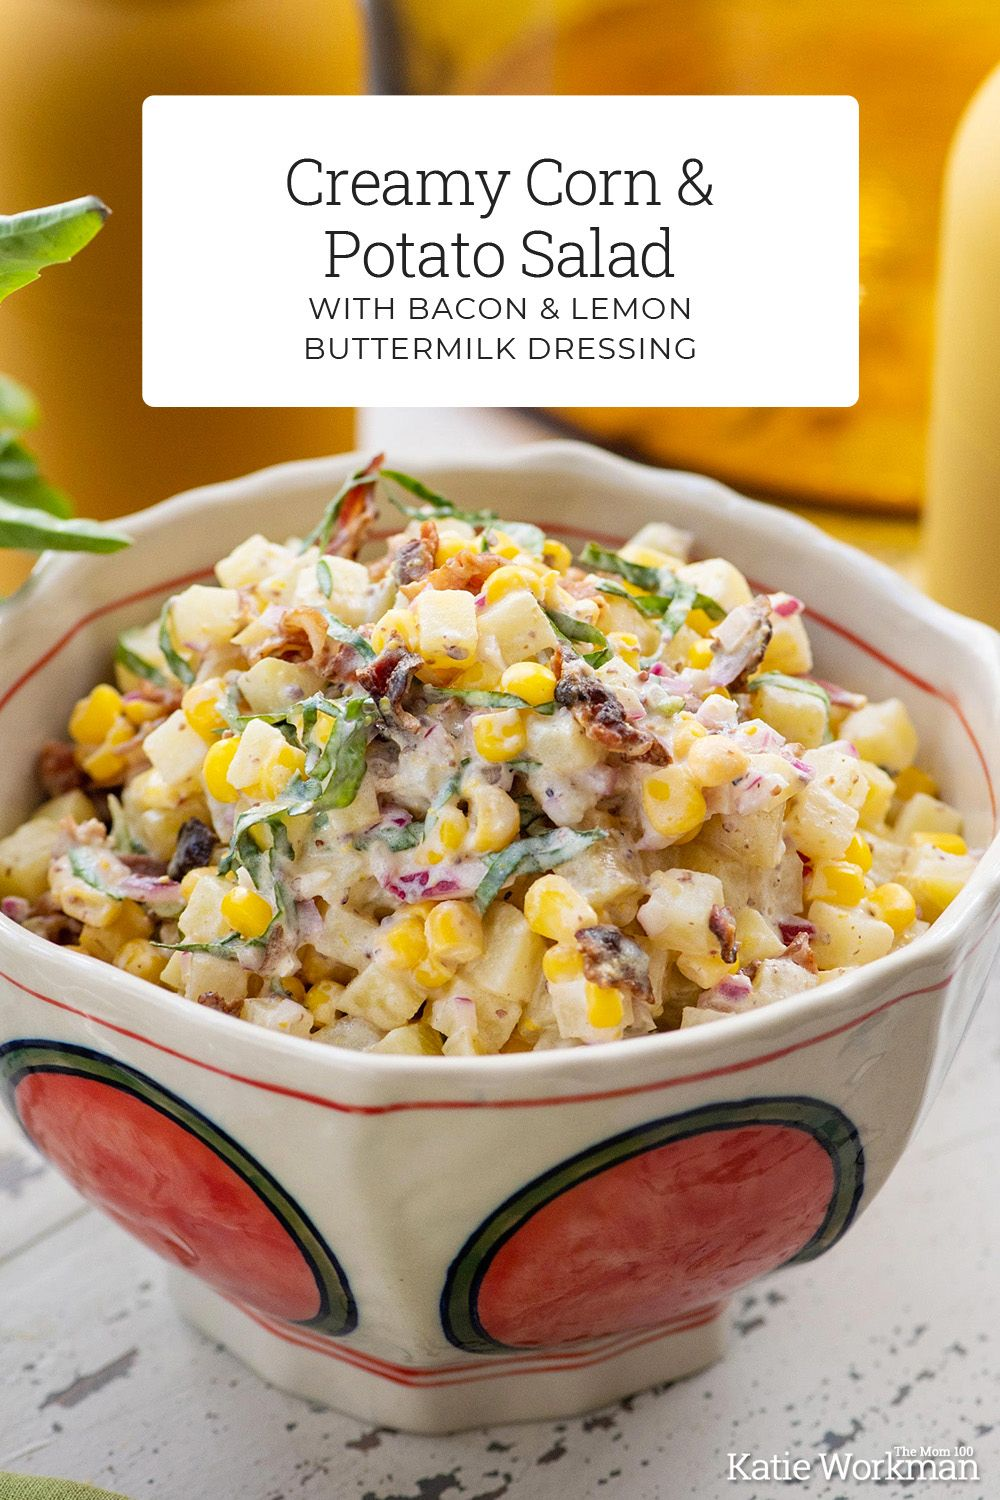 Creamy Corn And Potato Salad With Bacon And Lemon Buttermilk Dressing Recipe In 2020 Bacon Potato Salad Creamy Corn Potatoes